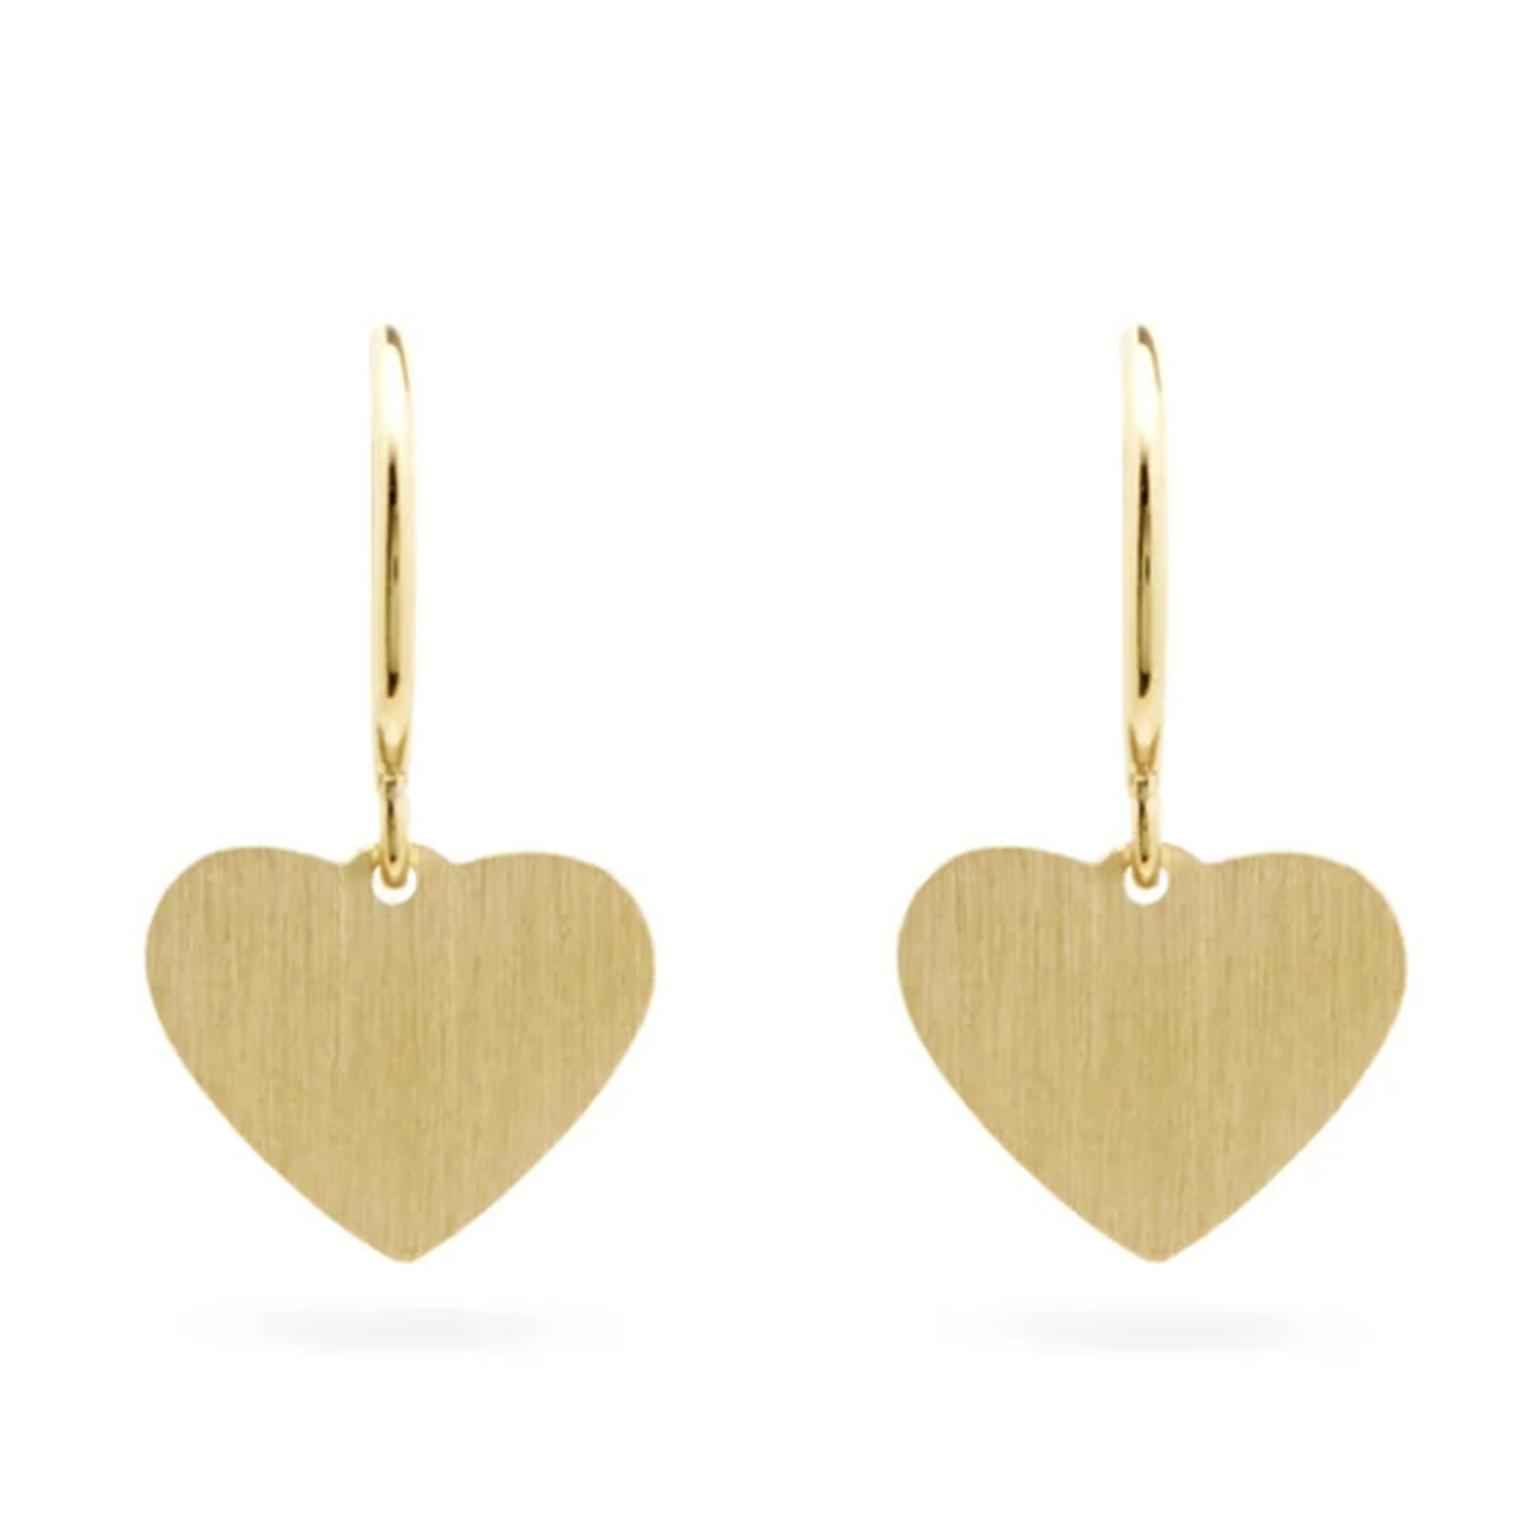 Heart earrings by Irene Neuwirth